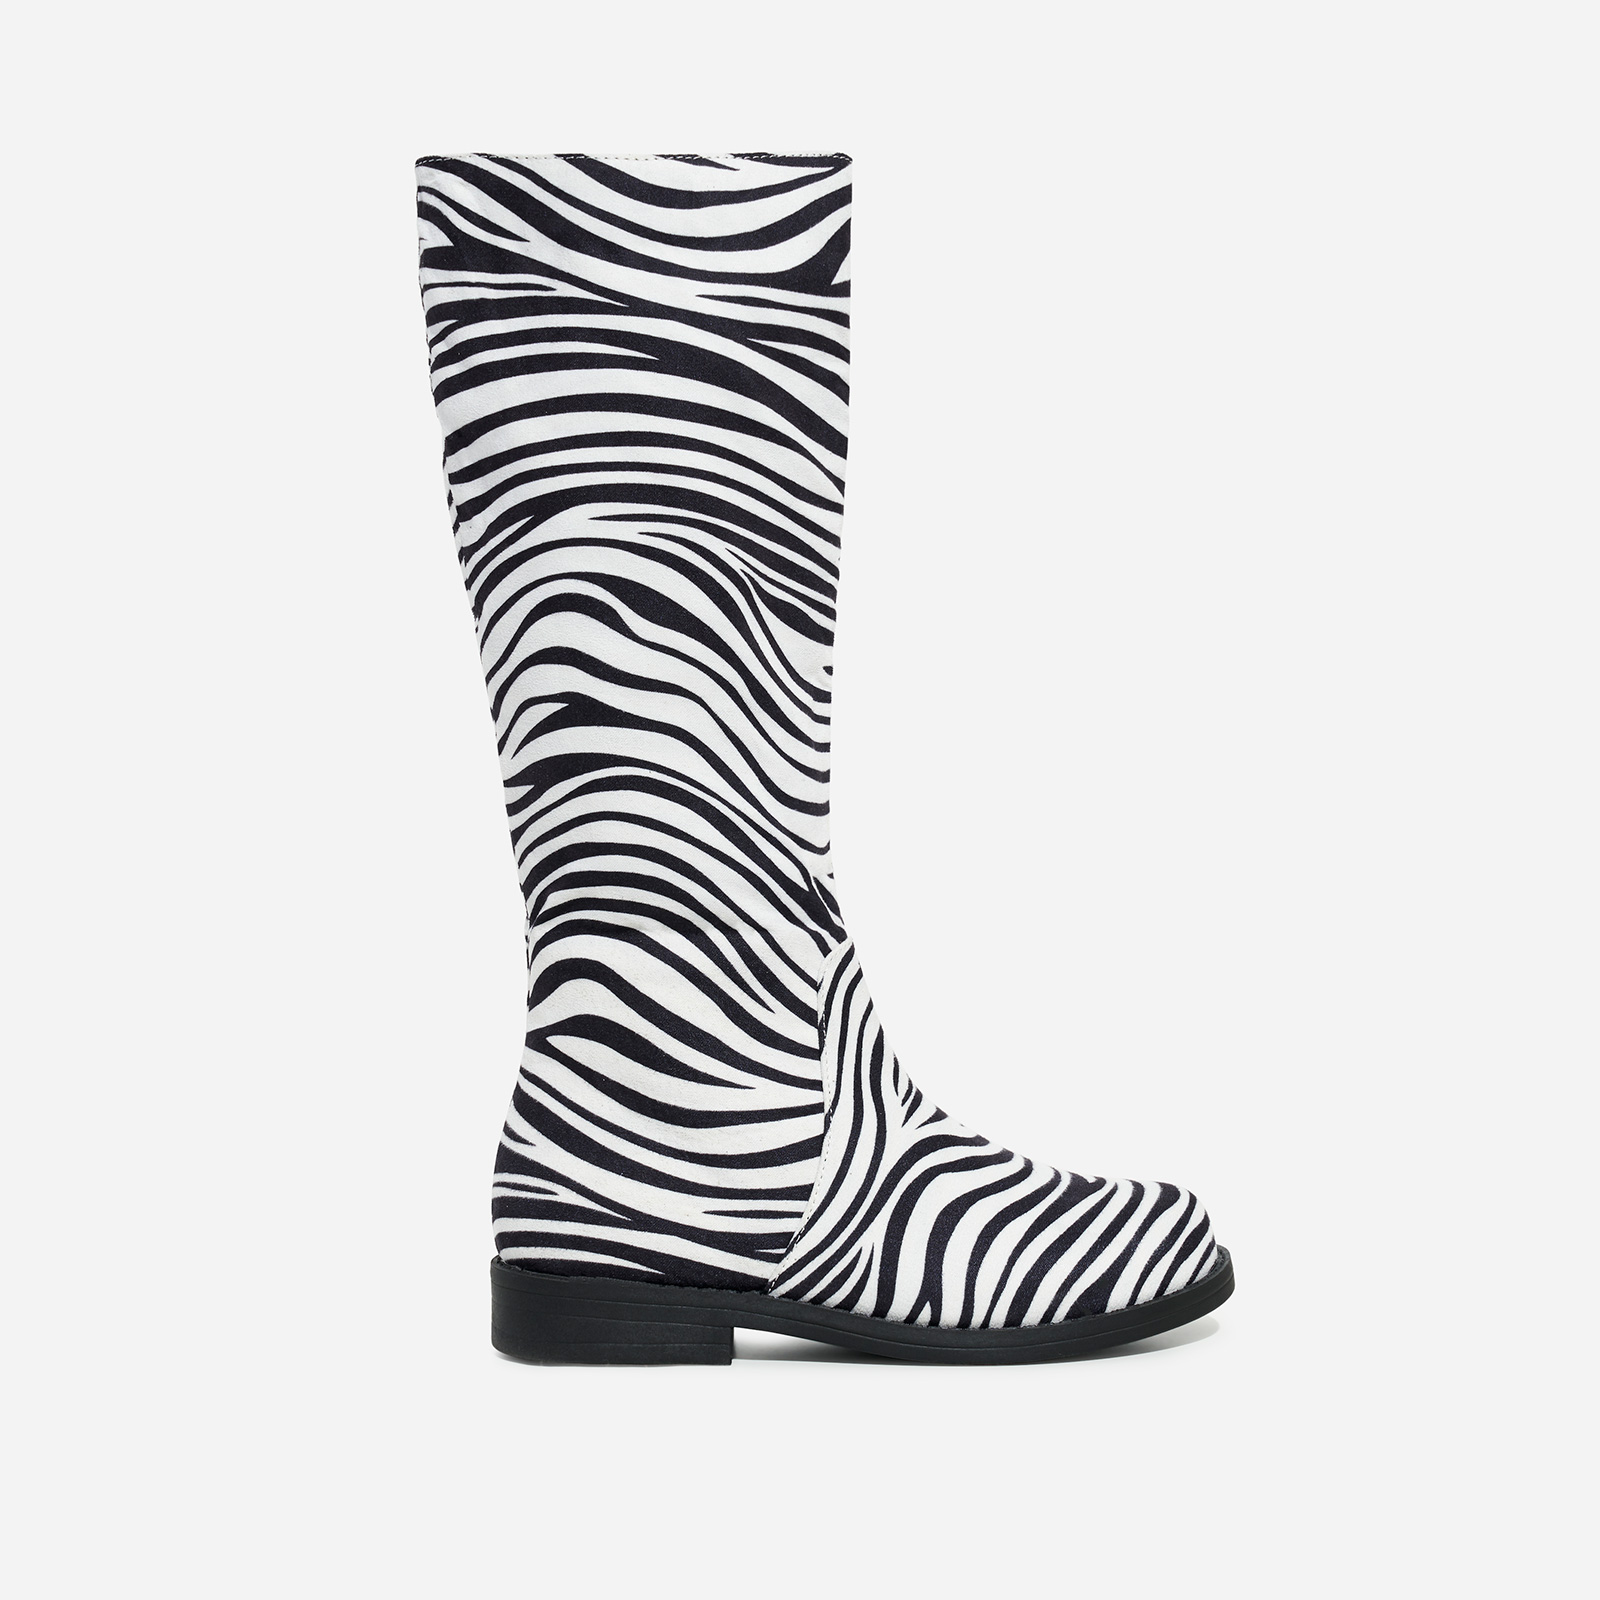 Animal Girl's Knee High Long Boot In Zebra Print Faux Suede